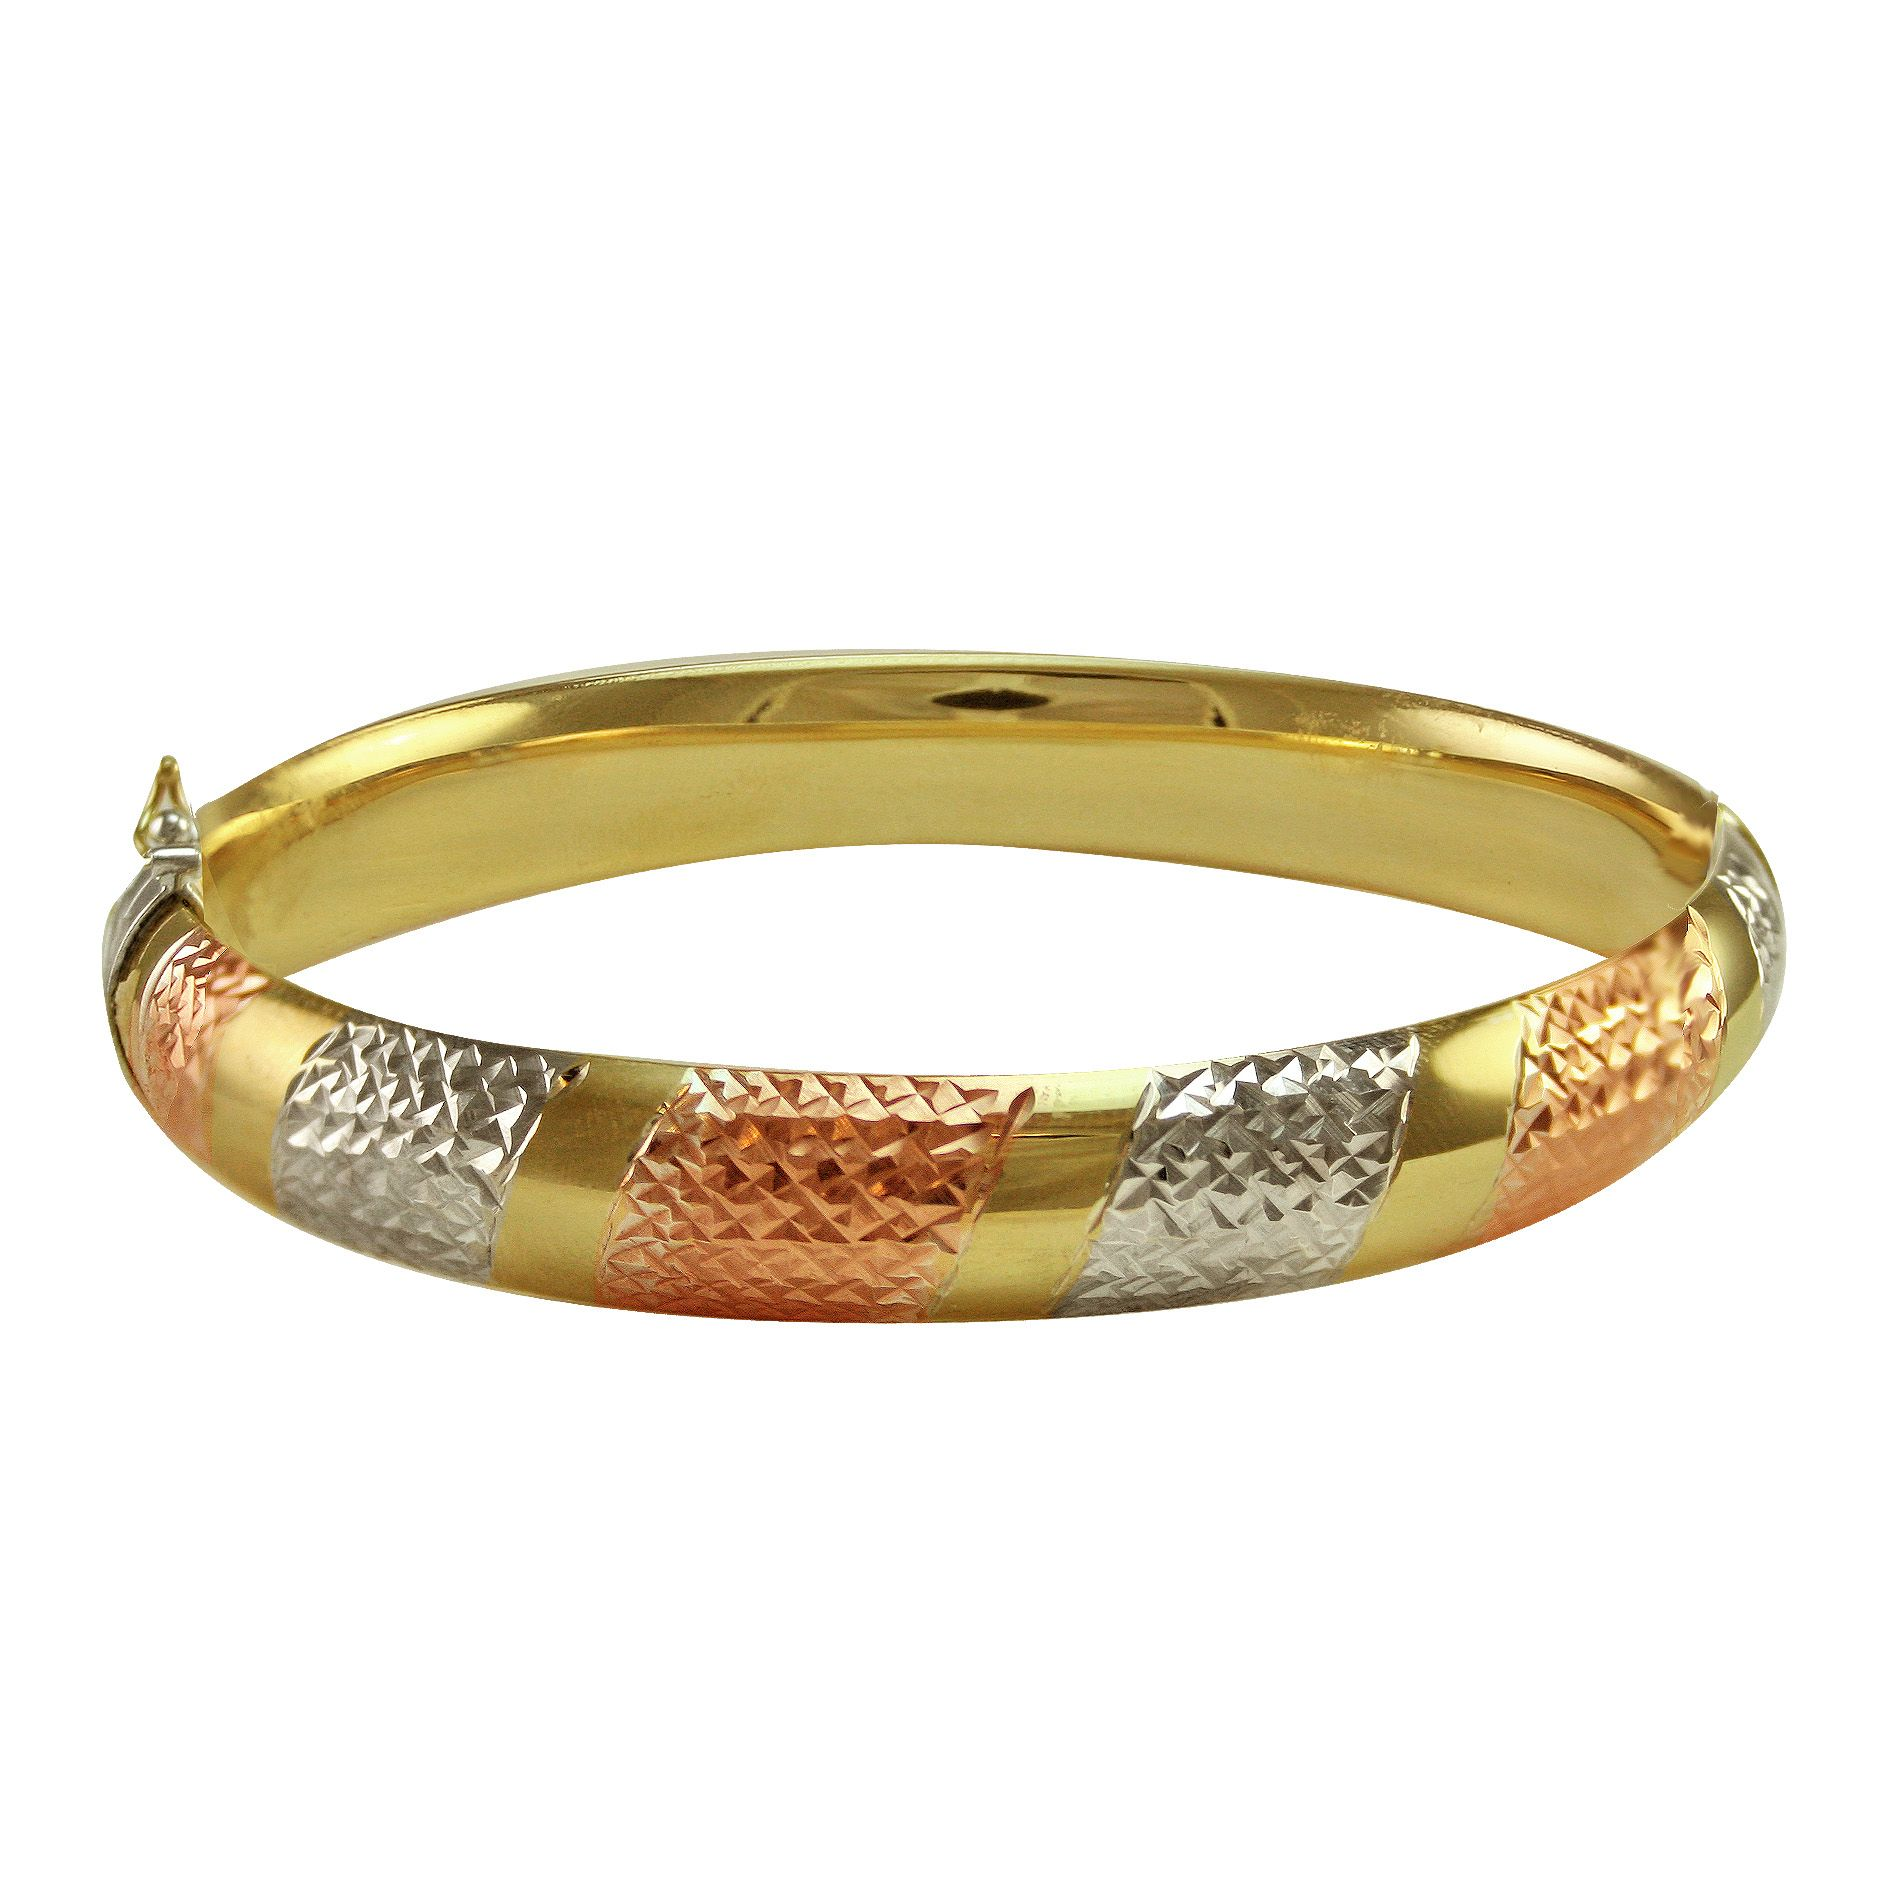 10kt Gold and Sterling Silver Bangle